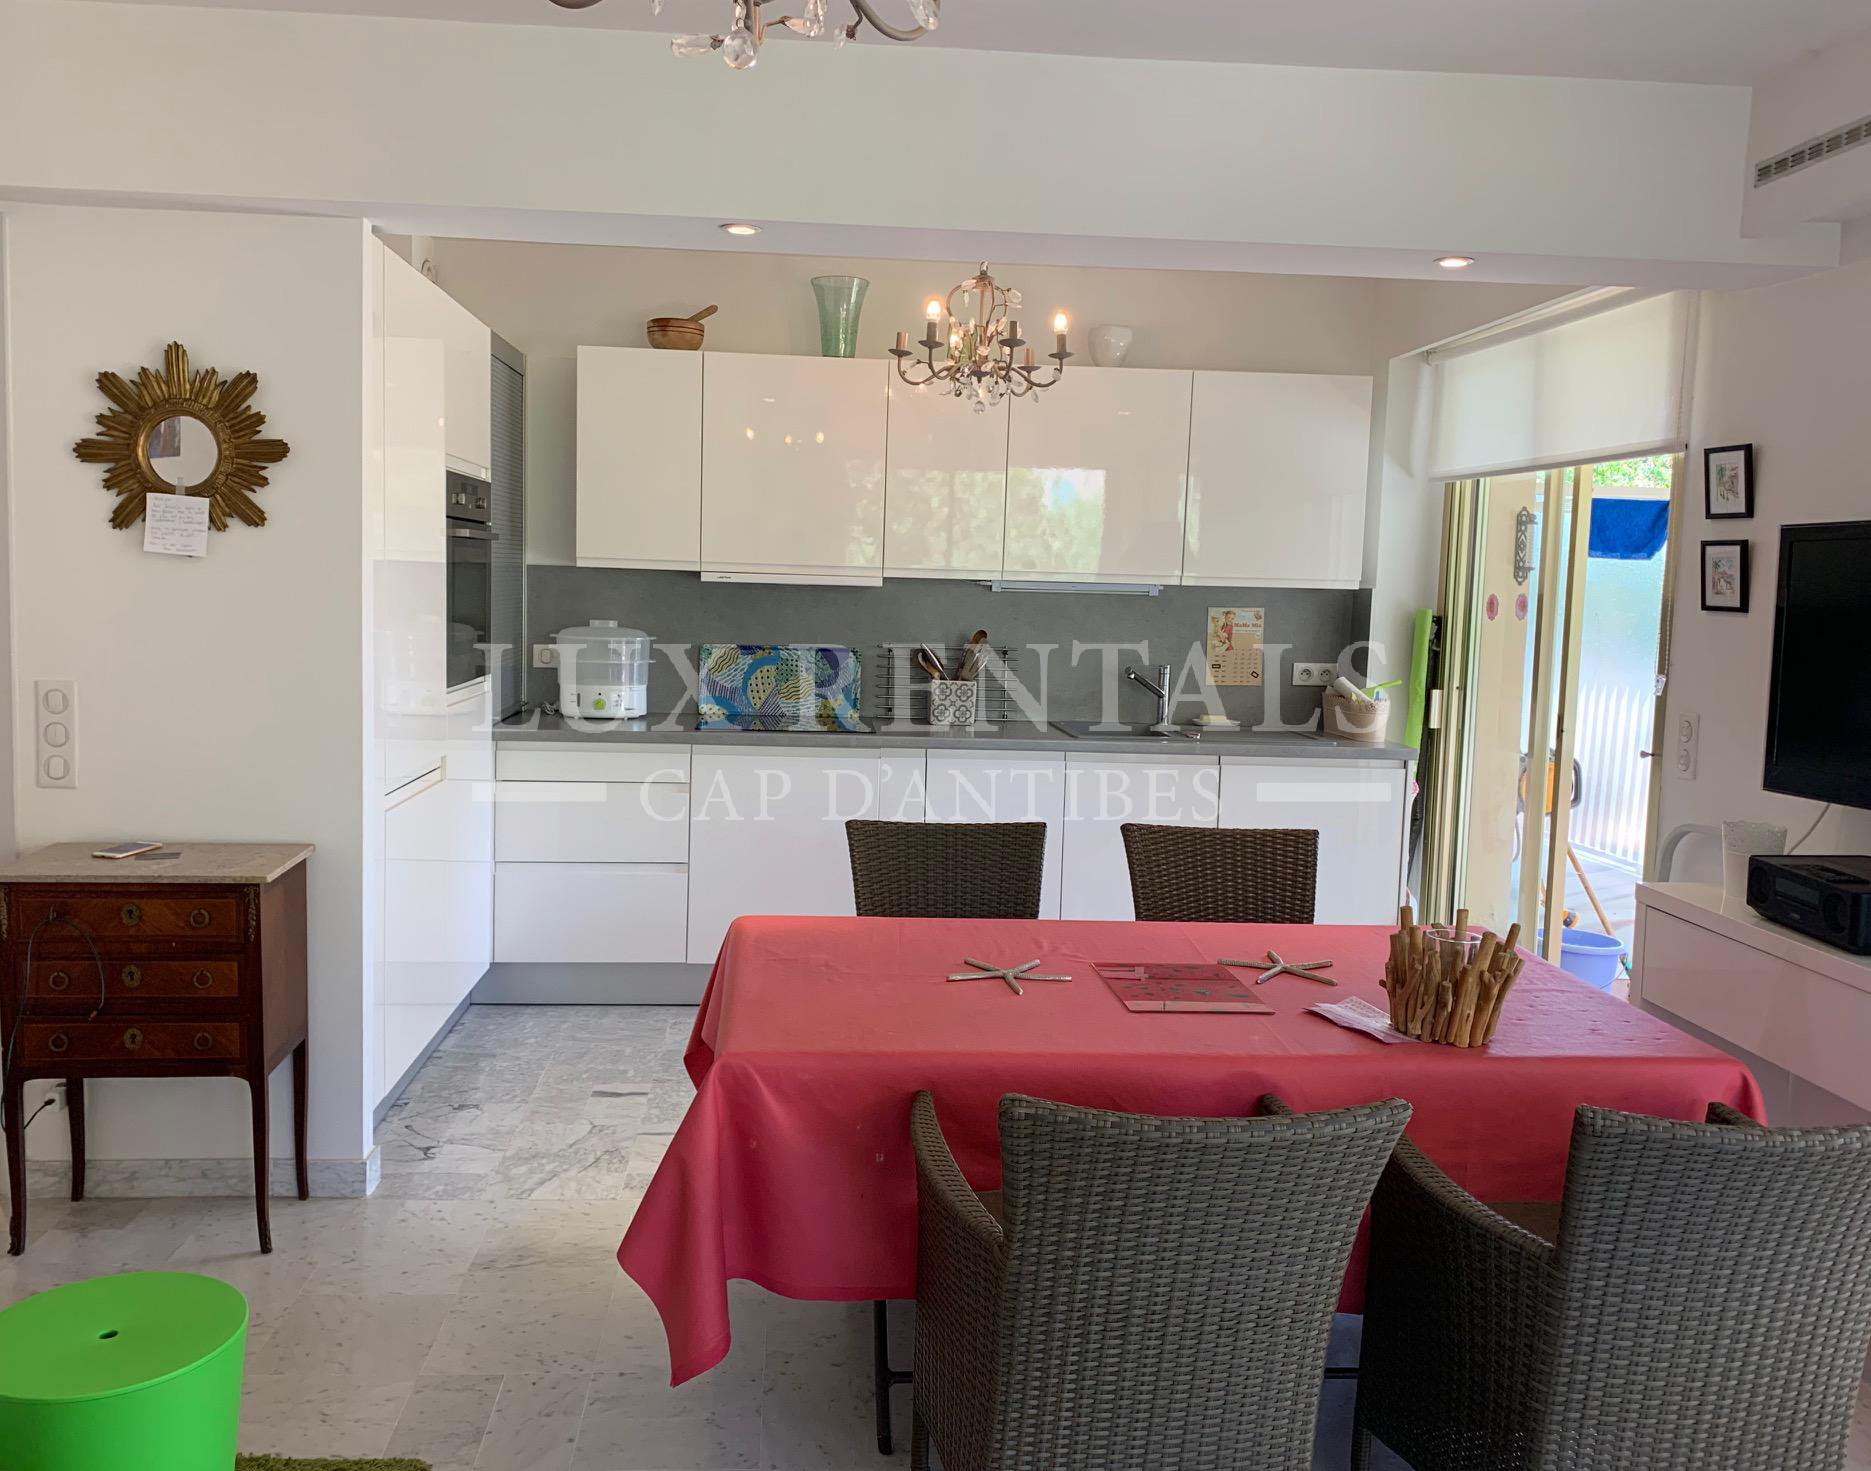 Seasonal rental Apartment - Antibes Cap-d'Antibes